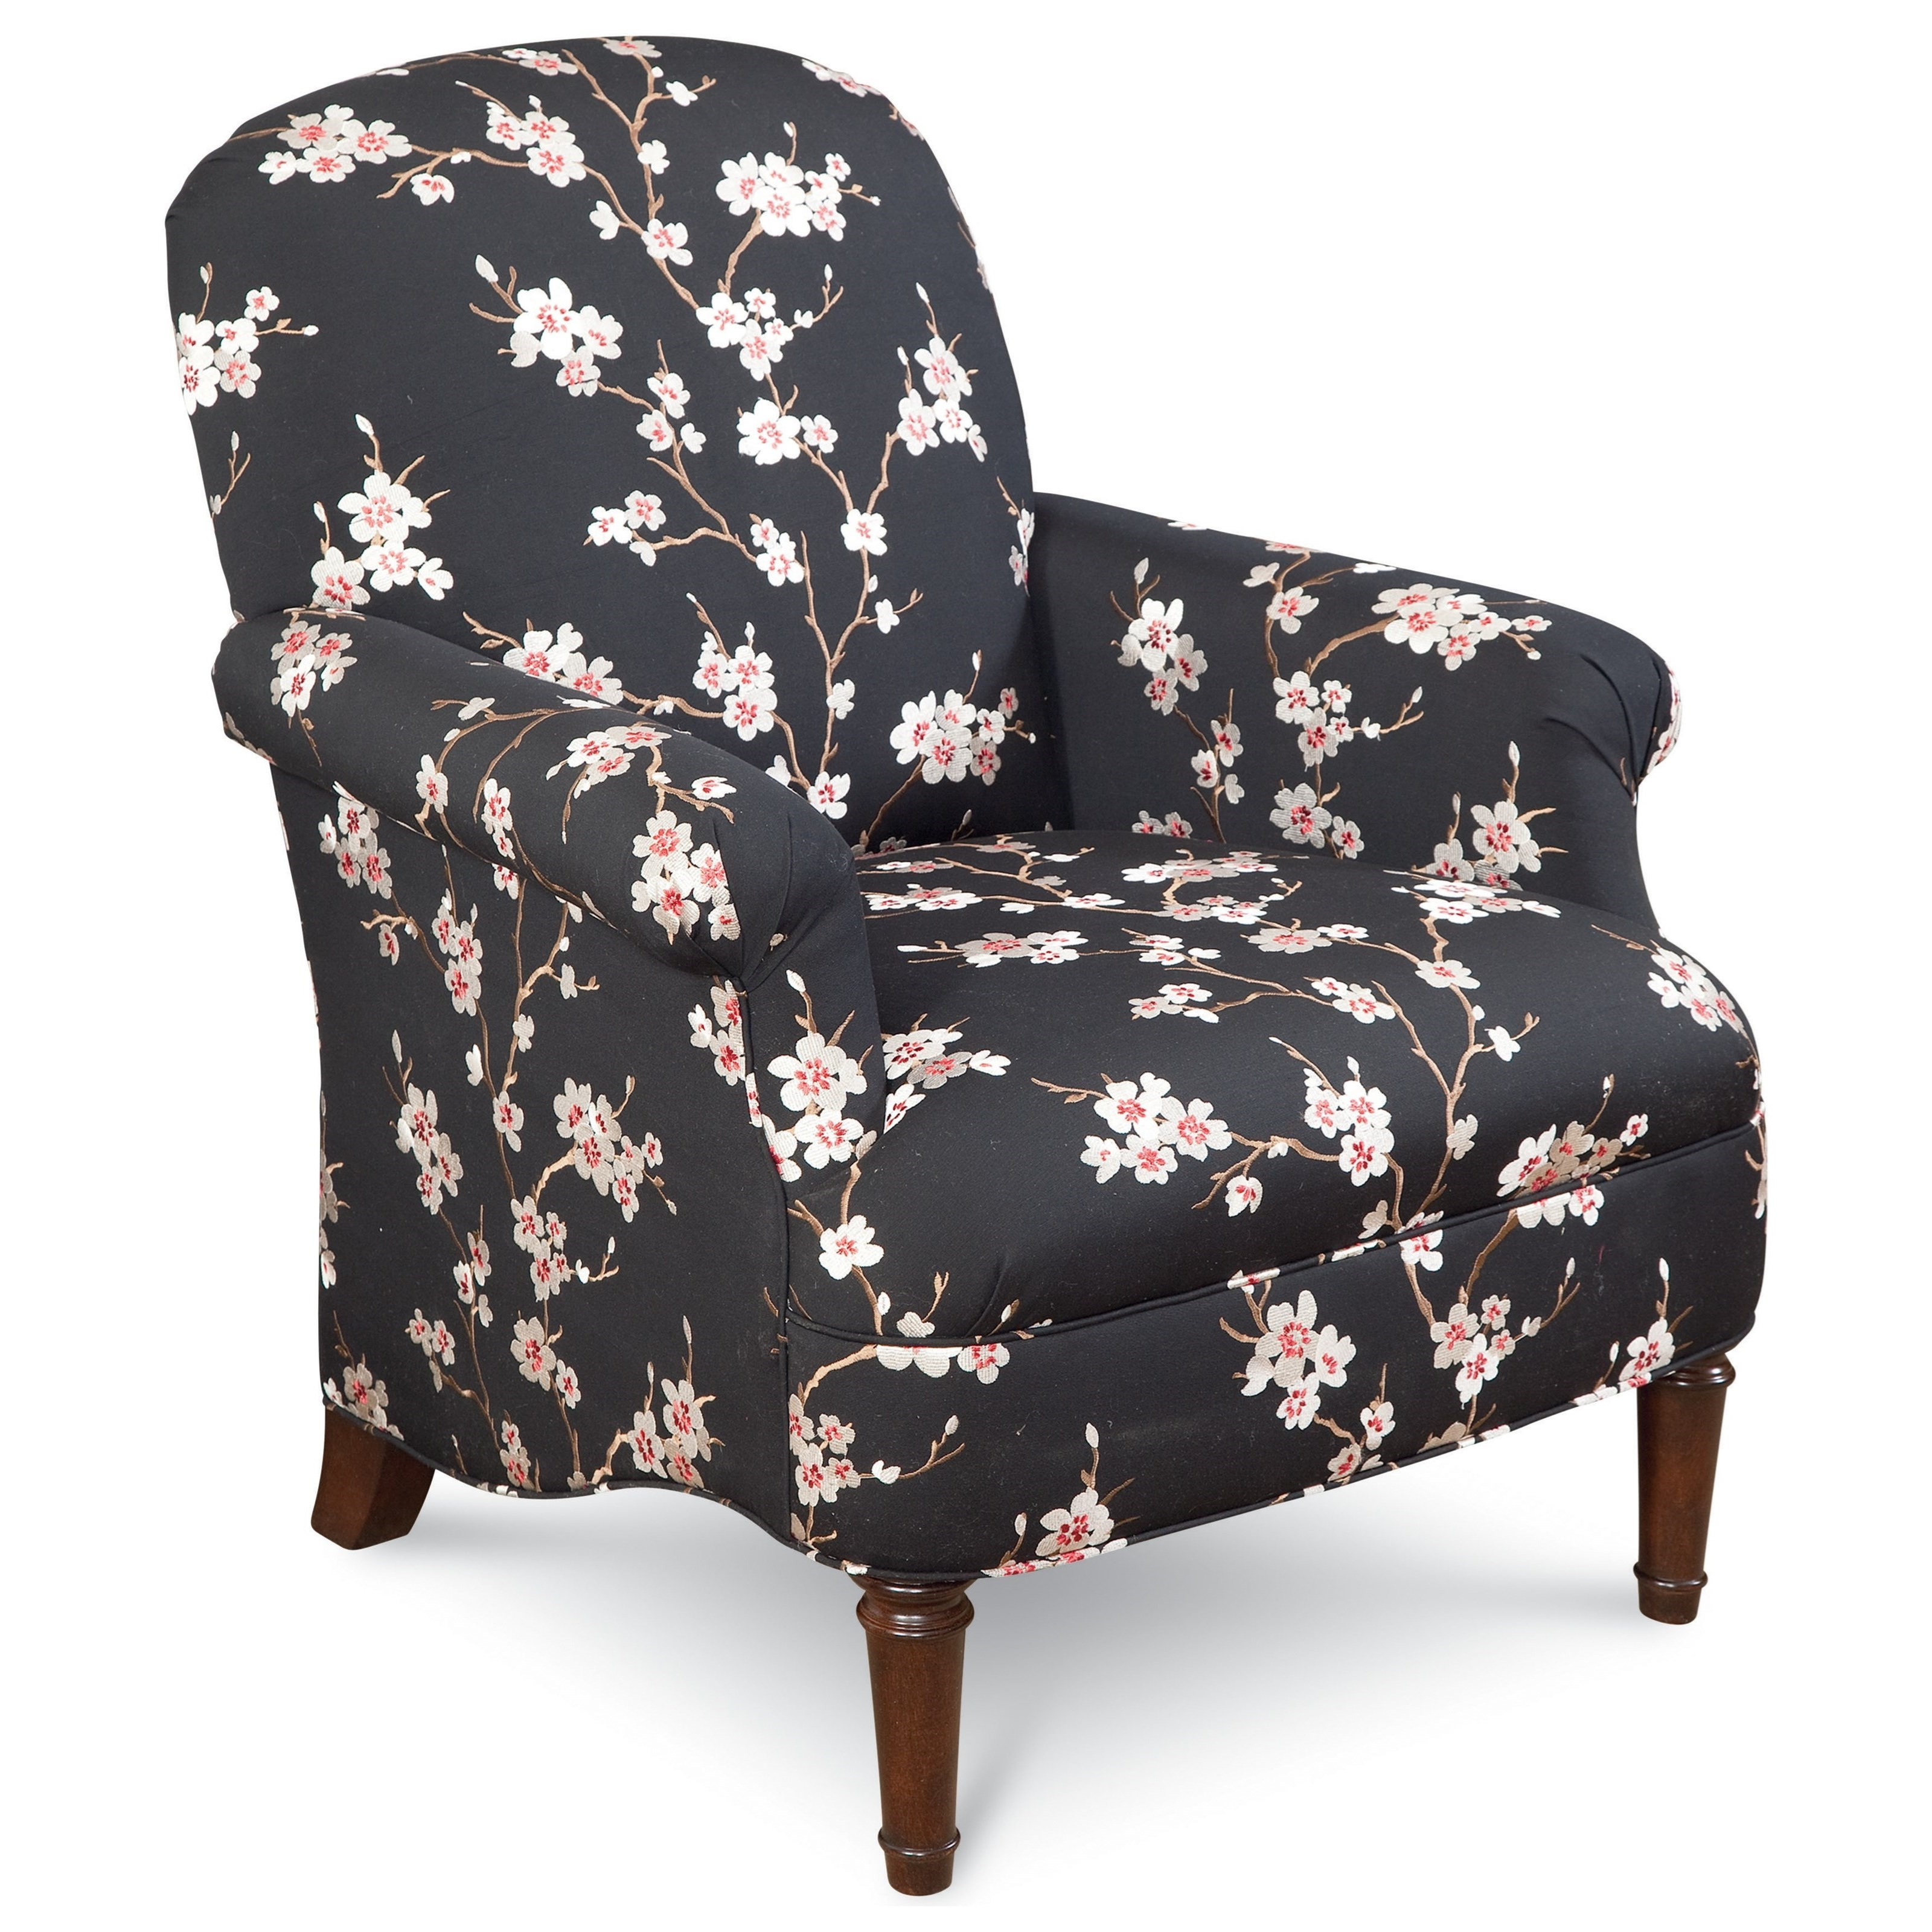 Thomasville® Upholstered Chairs And Ottomans Kinley Chair With Roll Pleated  Arms And Turned Wood Legs   Stuckey Furniture   Upholstered Chairs